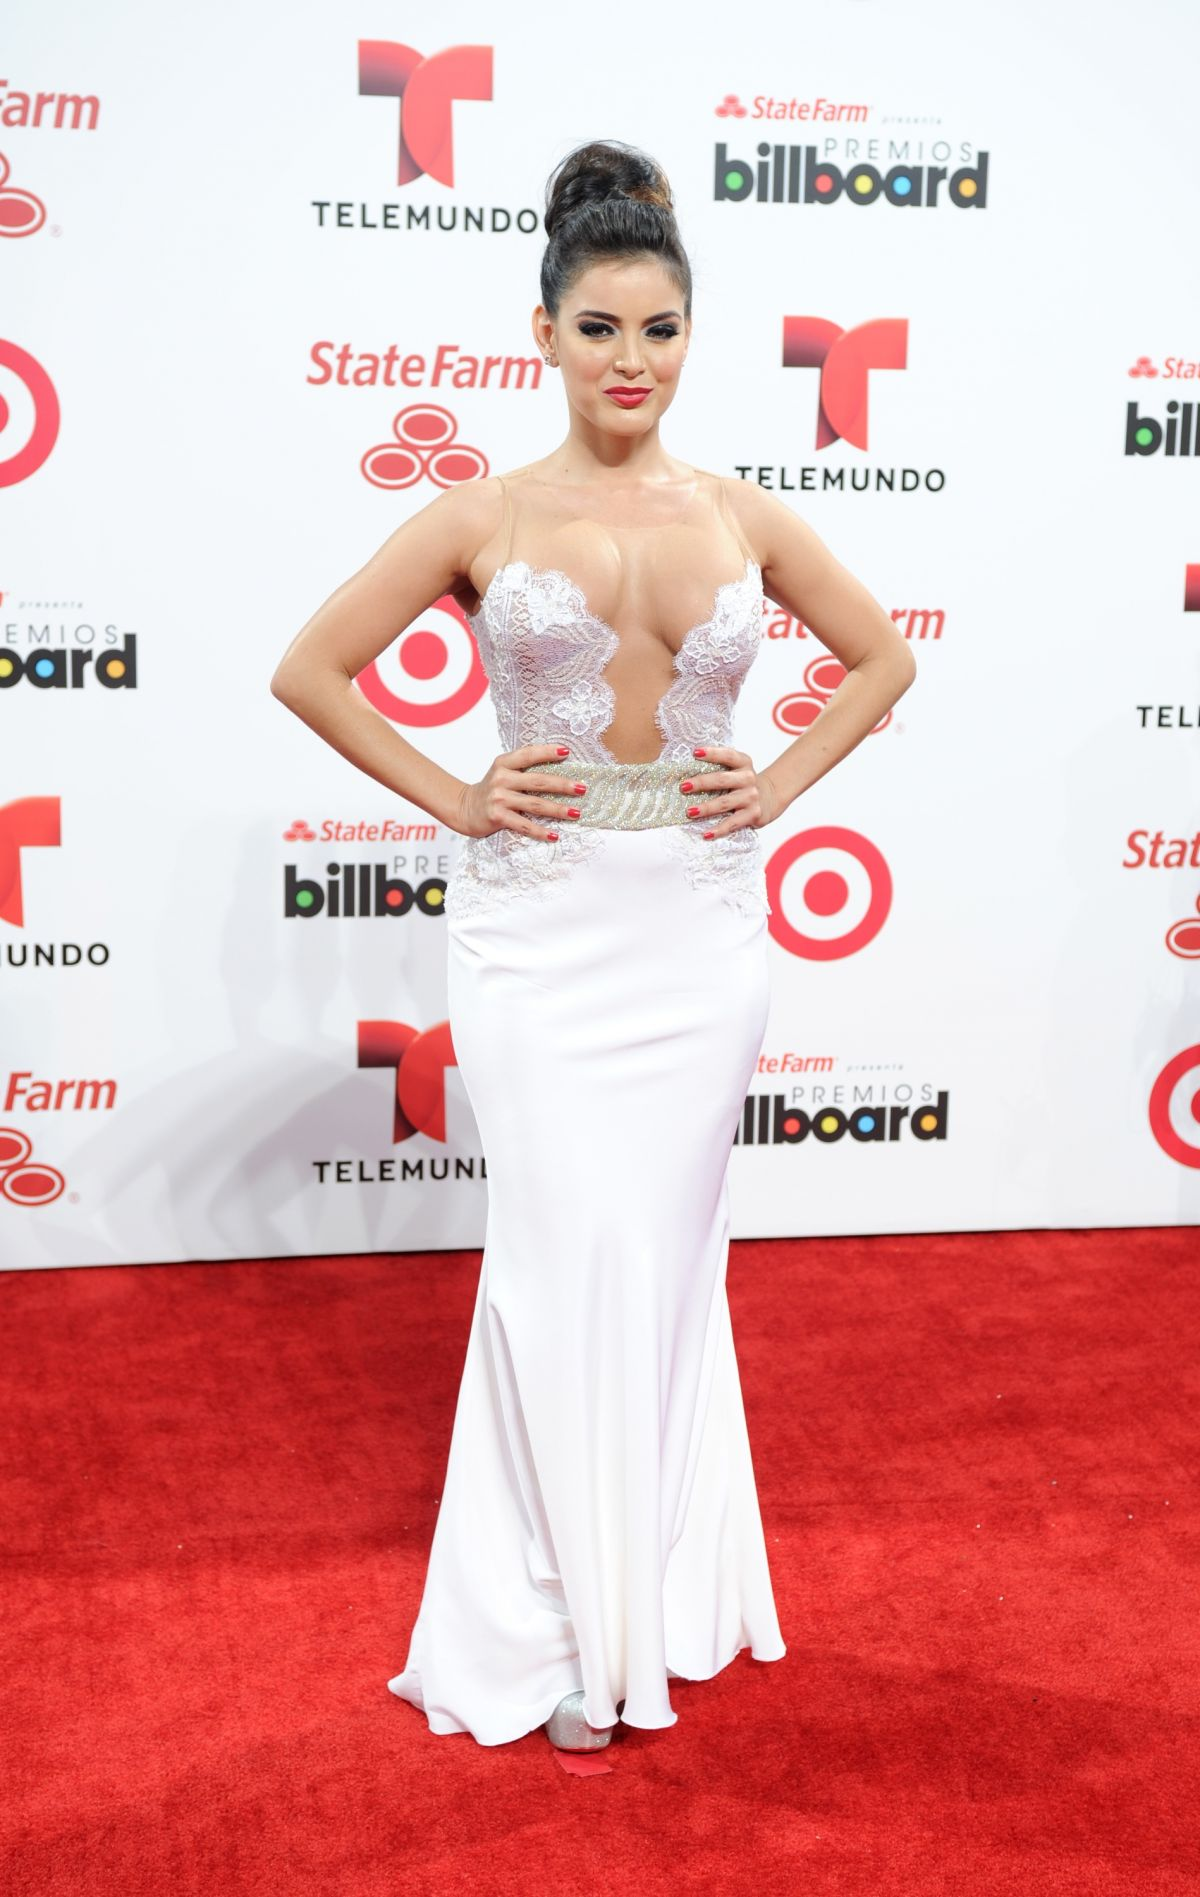 DANEILA NAVARRO at 2014 Billboard Latin Music Awards in Miami